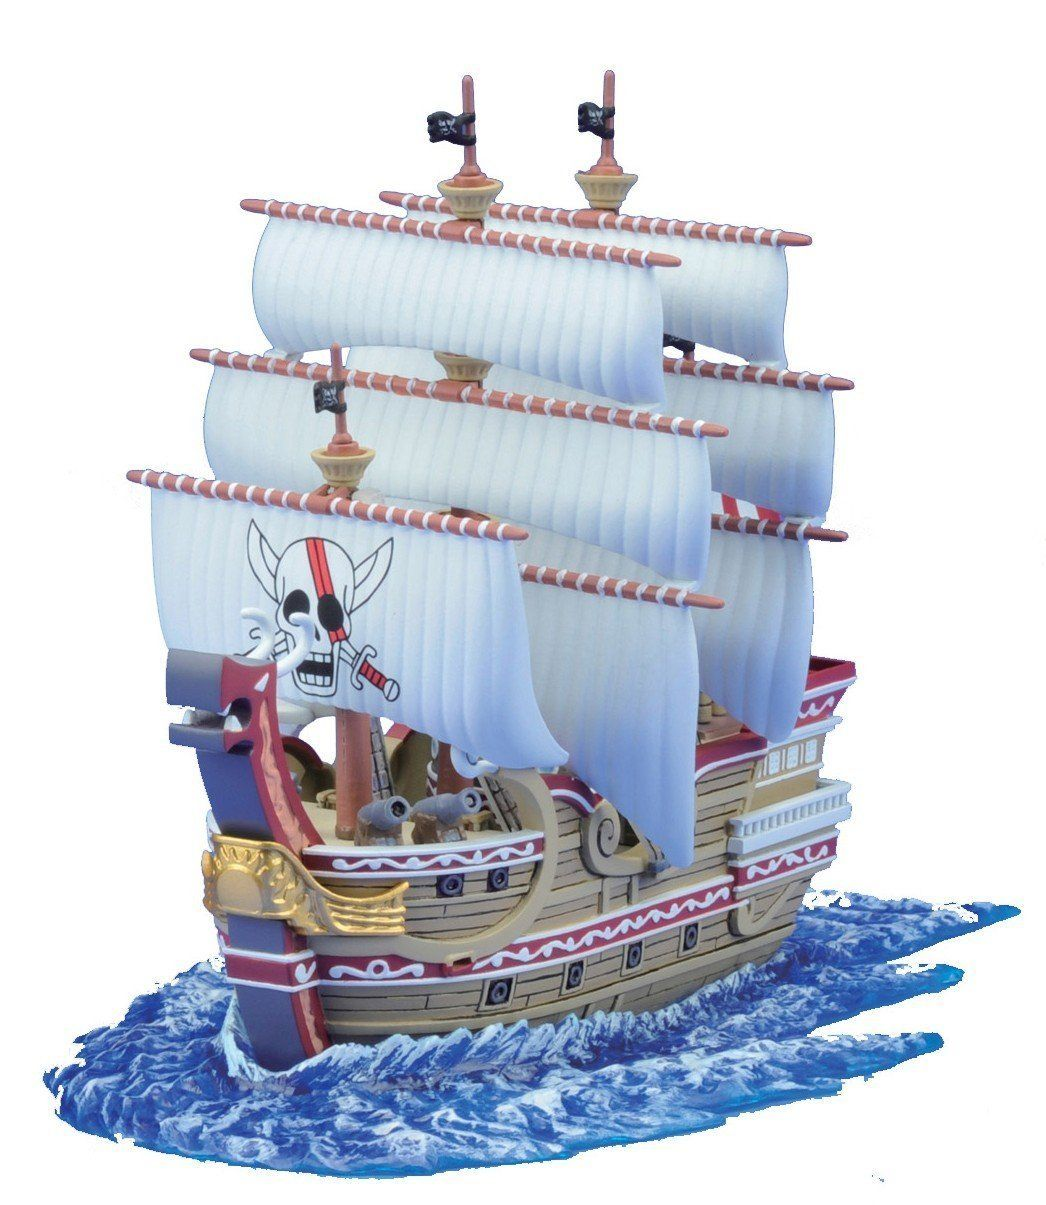 Grand Ship Collection Bandai Hobby Moby Dick One Piece